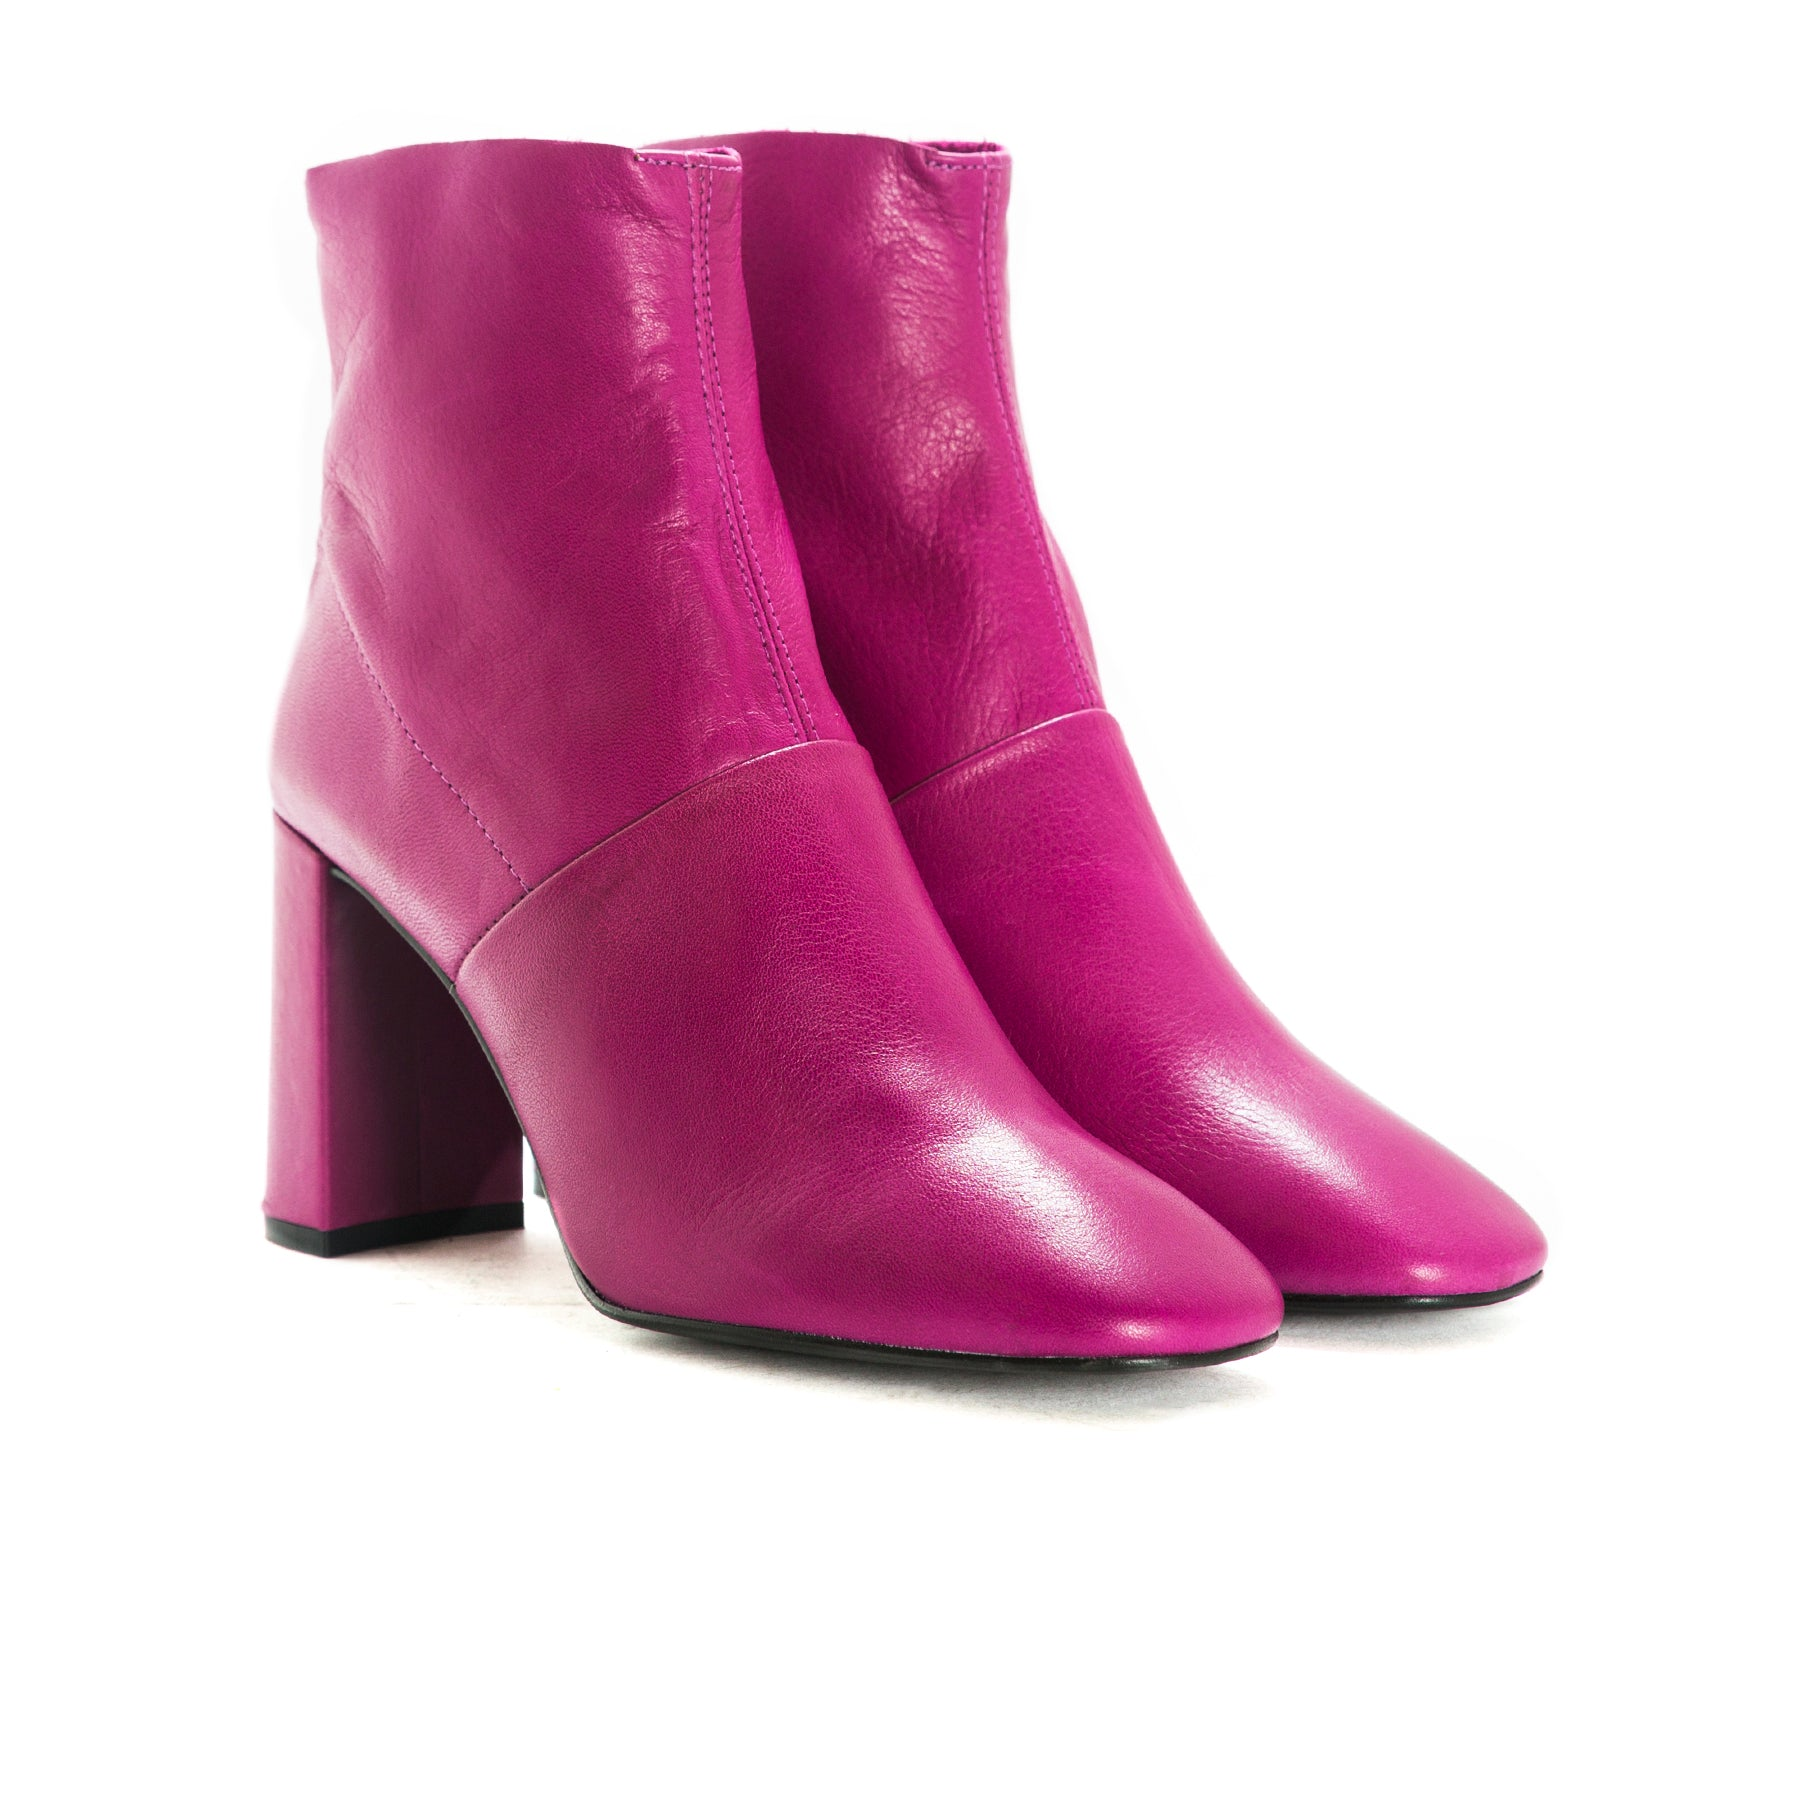 Devika Pink Leather Boots